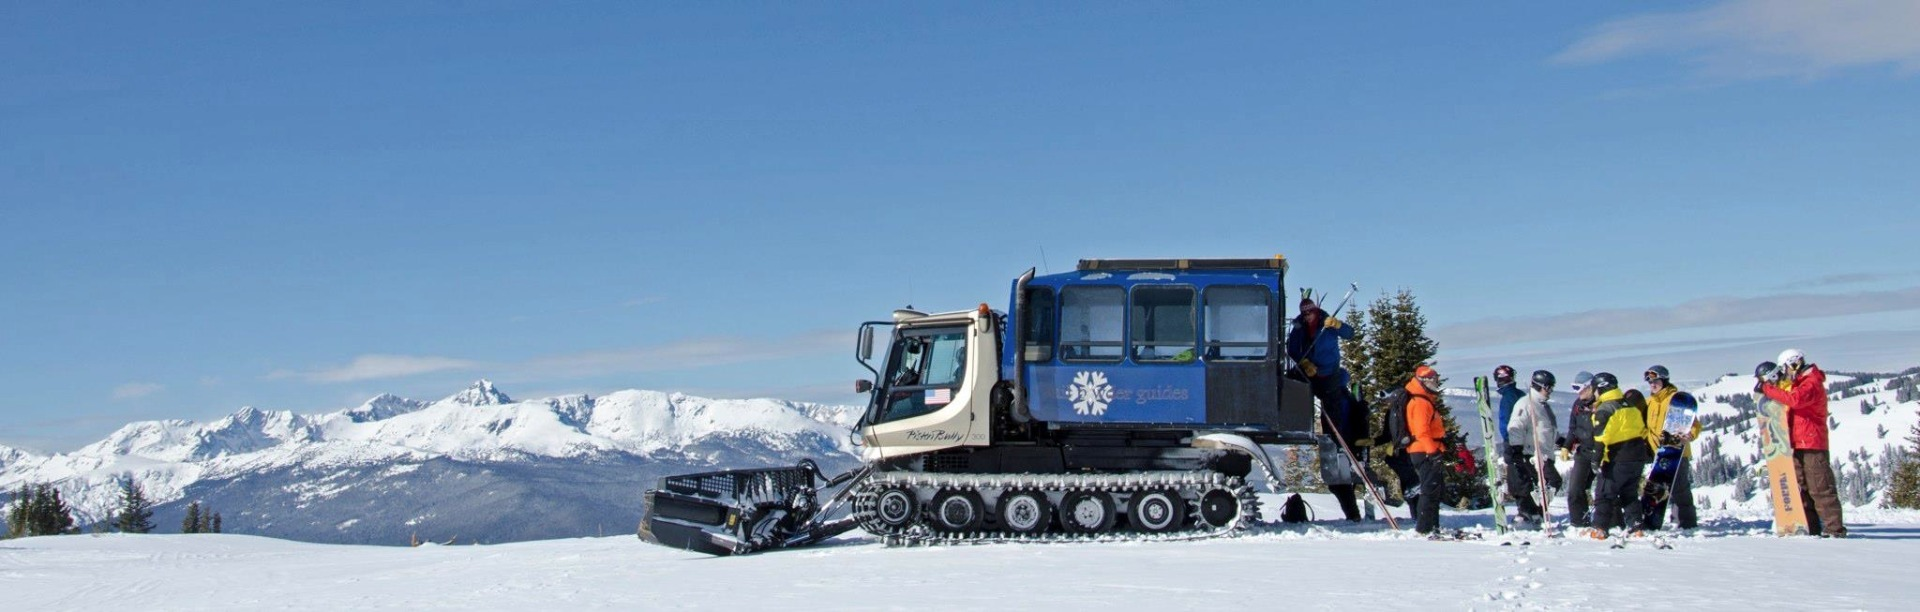 The snowcat with Vail Powder Guides.